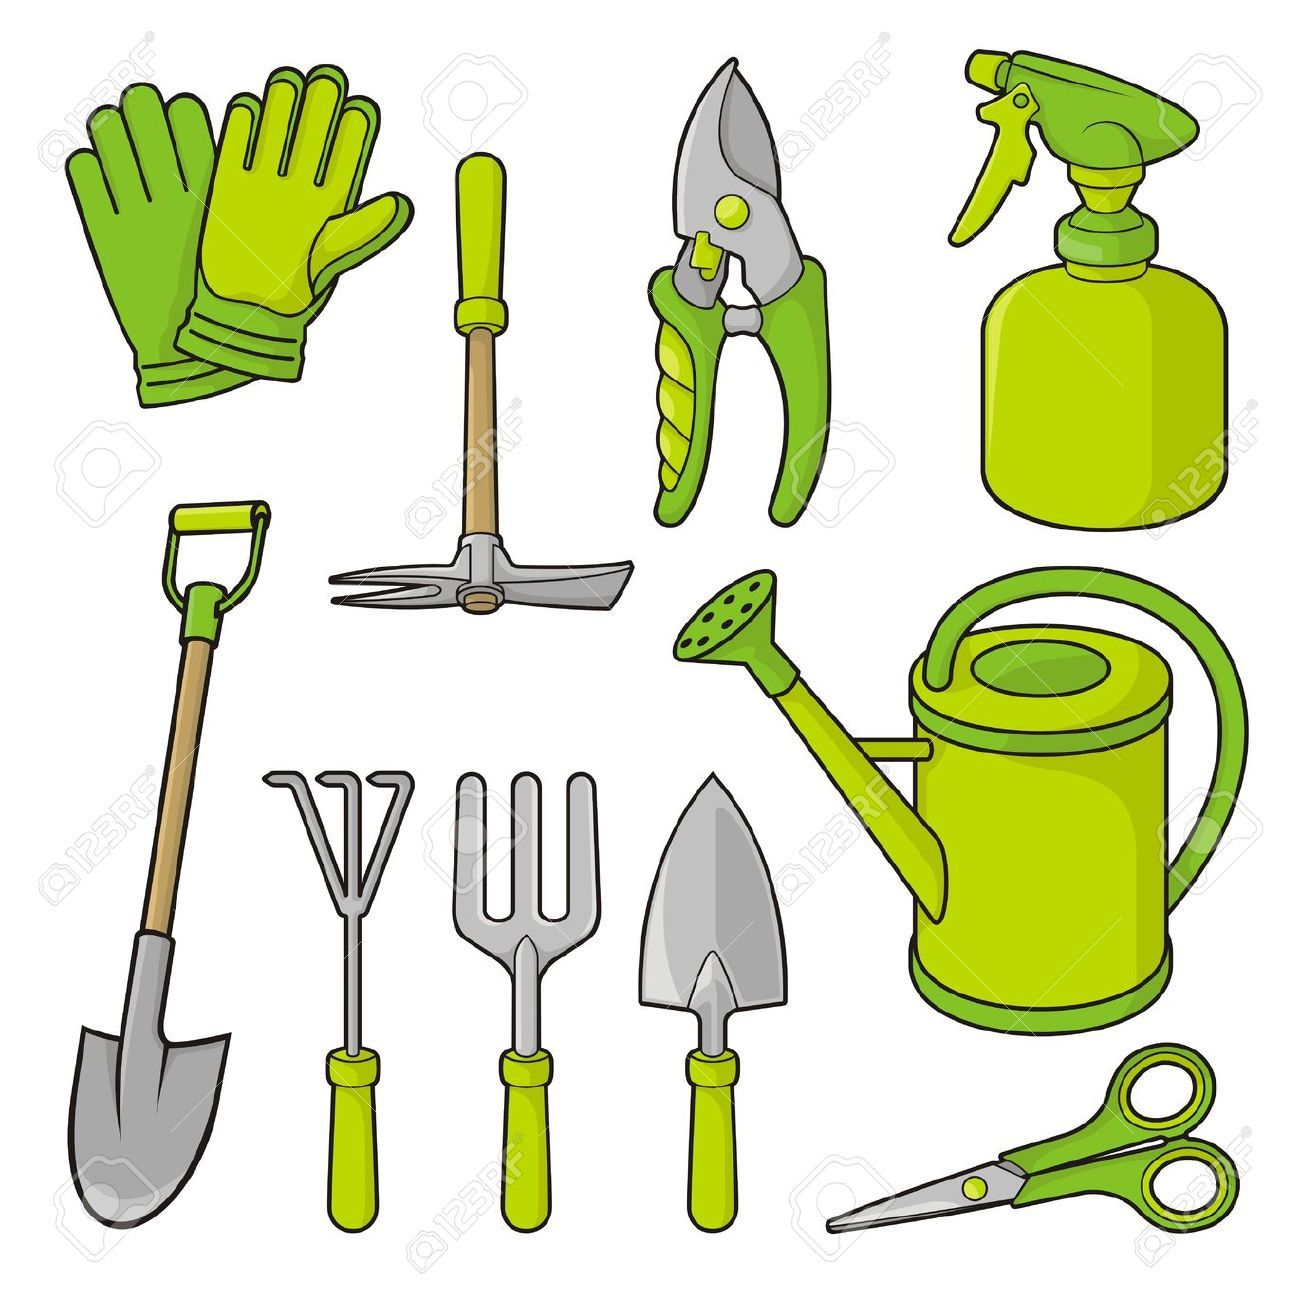 Gardening Tools Clip Art Free You Can Find Out More